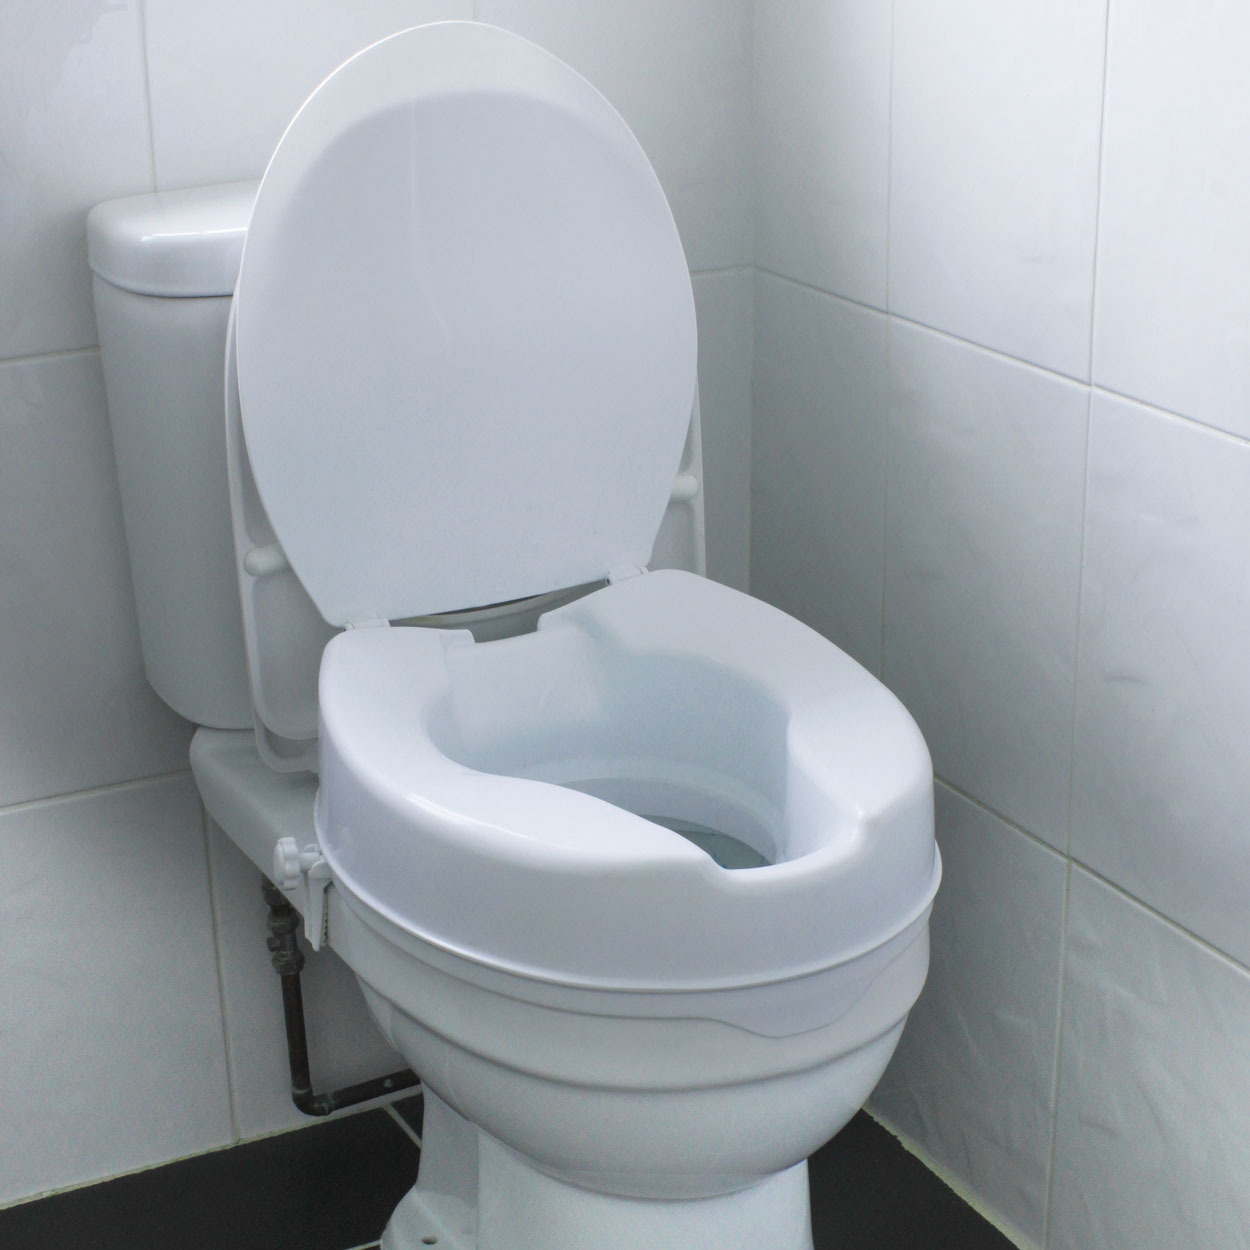 Raised Comfort Toilet Seat | Housewares | Coopers Of Stortford